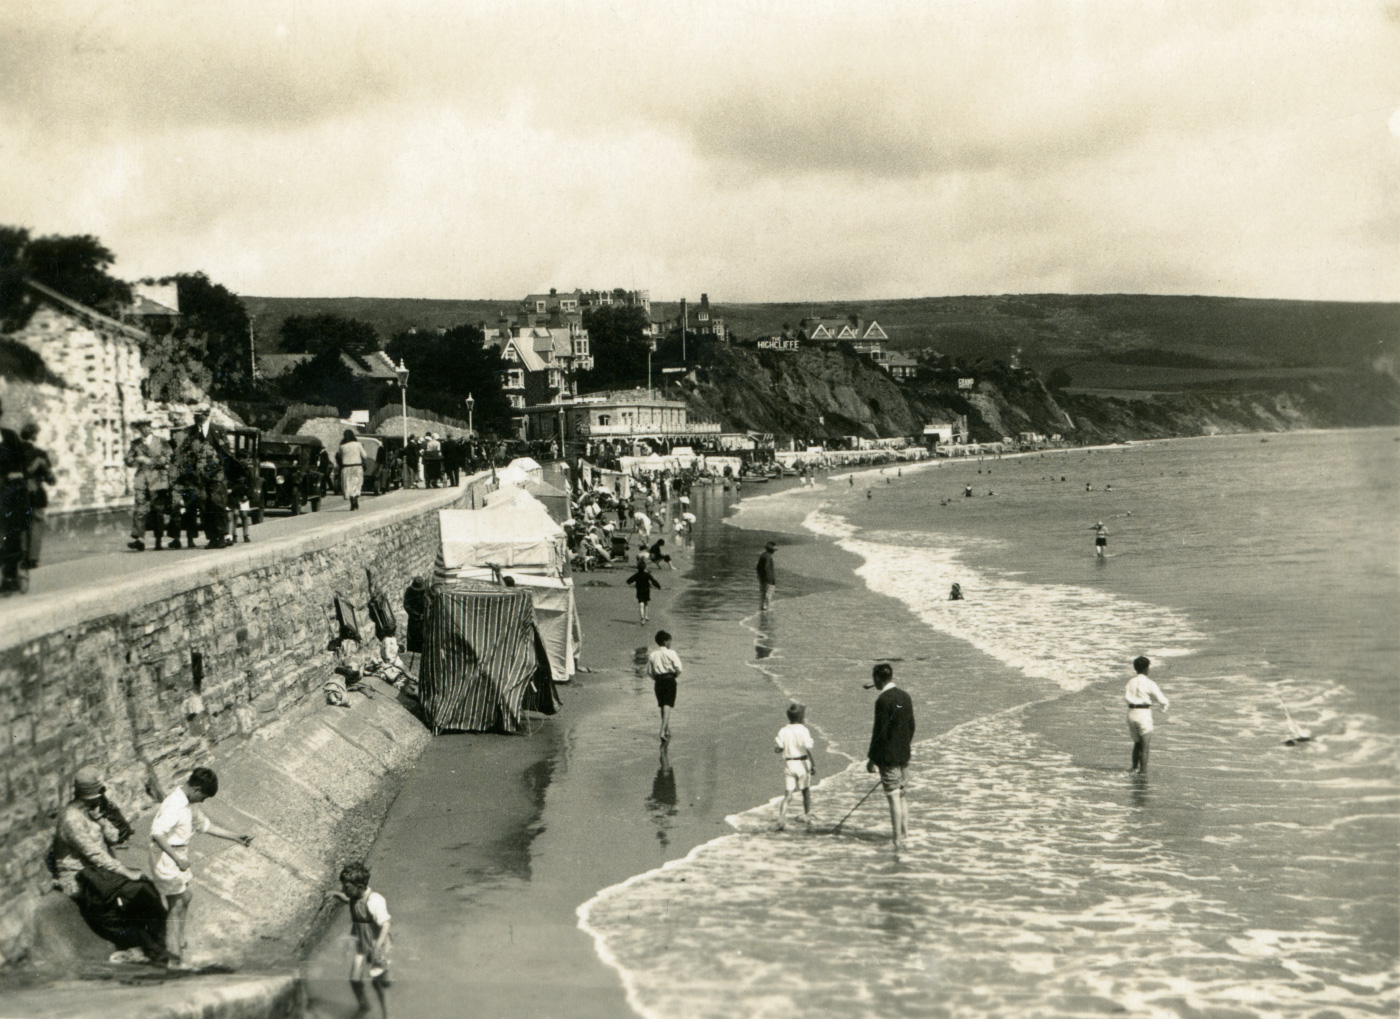 Shore Road and Beach in the 1930s